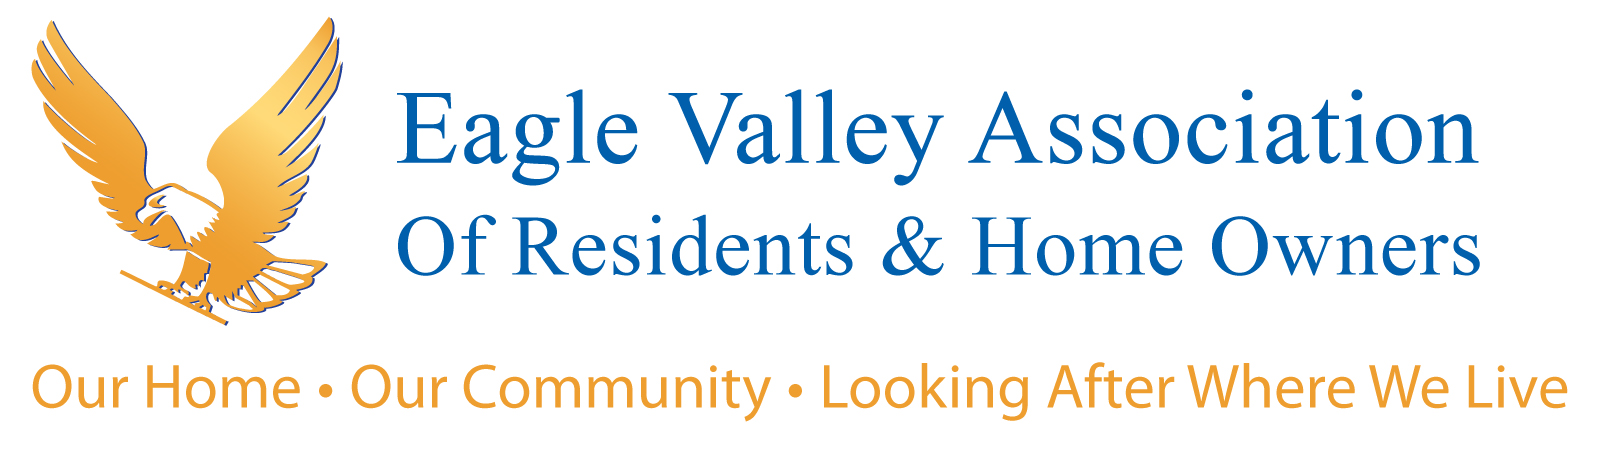 Eagle Valley Association of Residents & Home Owners